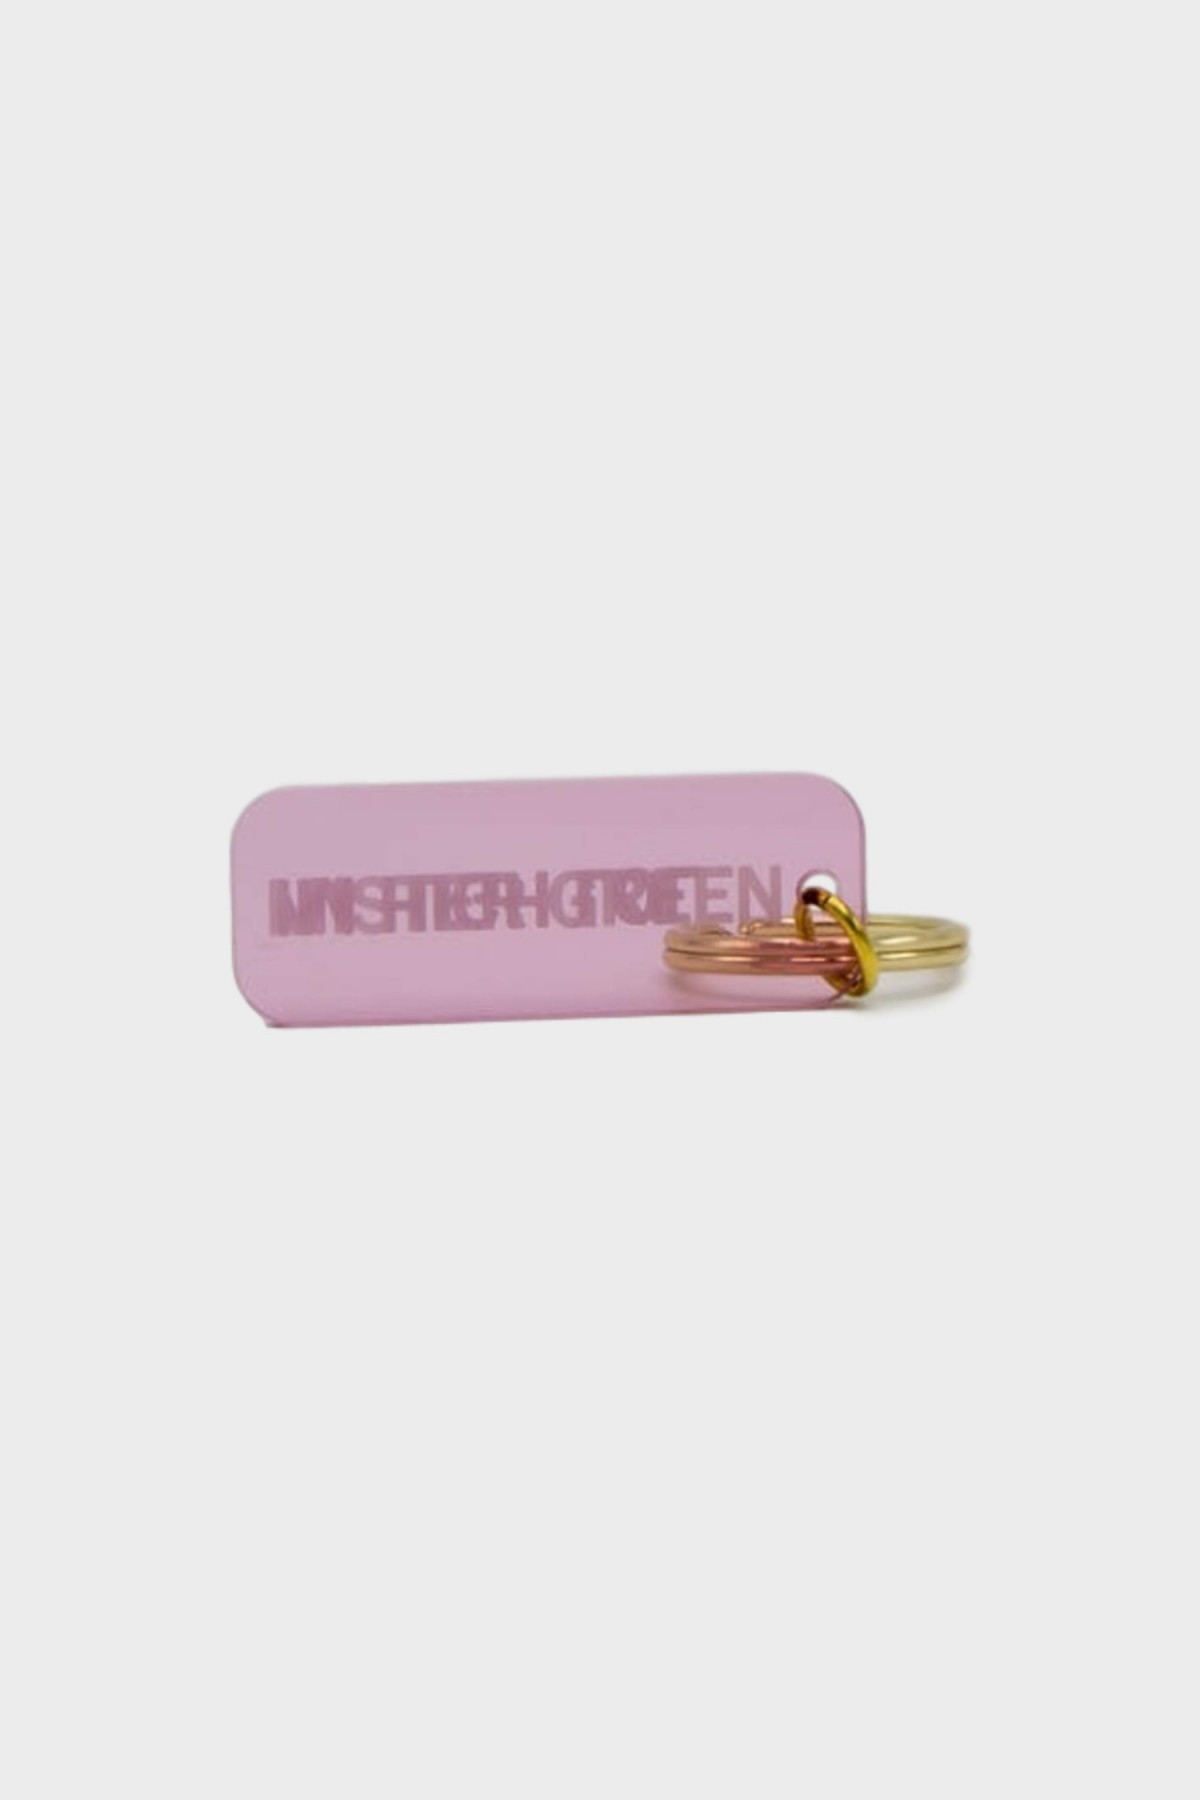 Mister Green I'm High LoL / Mister Green Key Tag in Pink